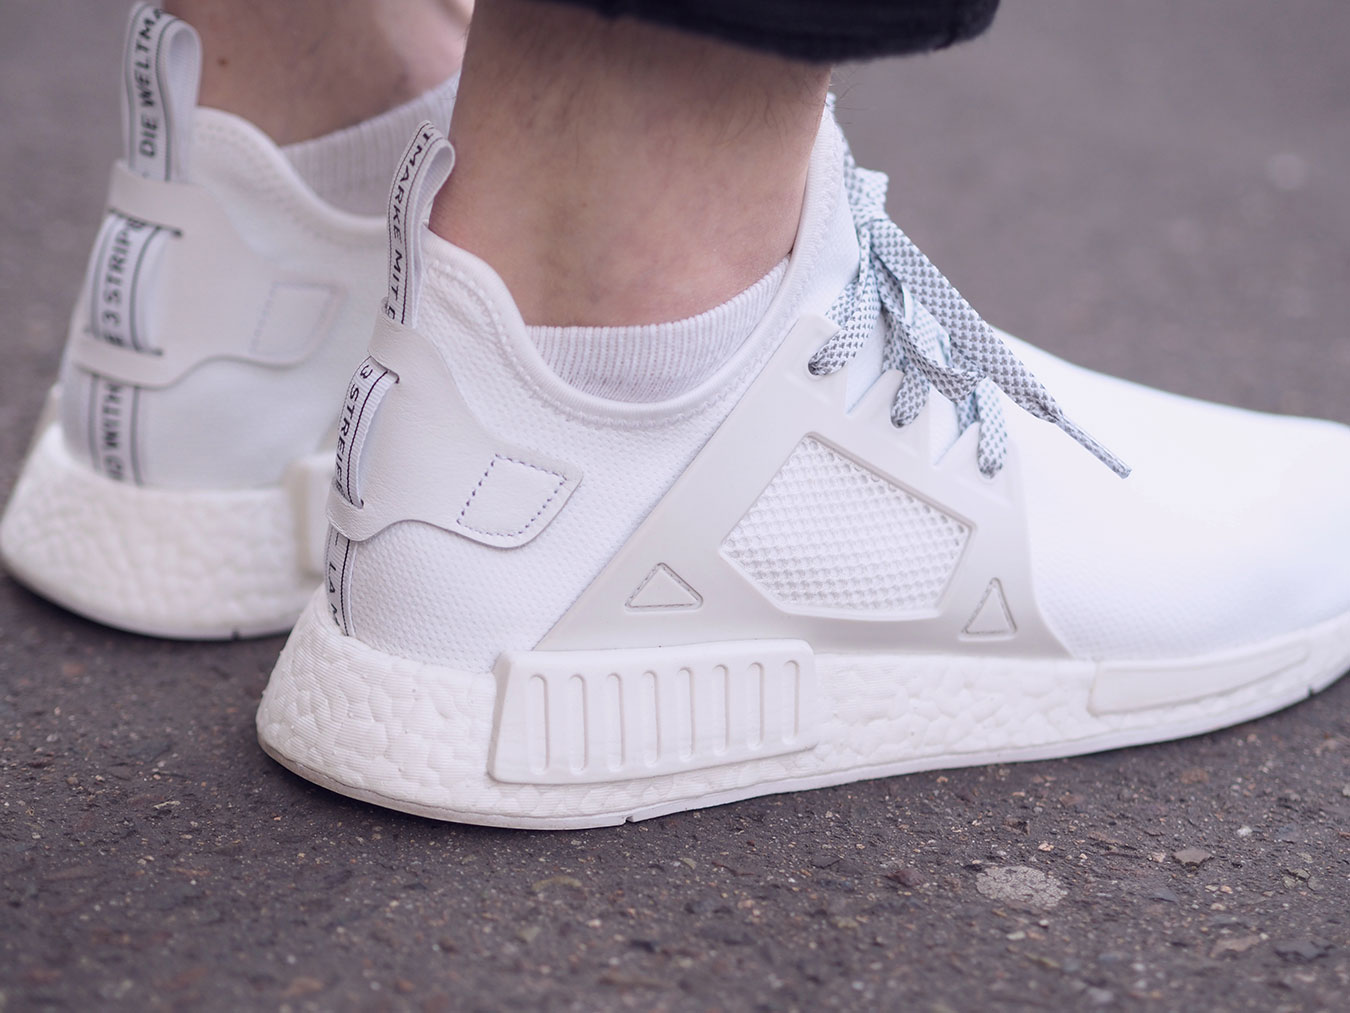 Adidas nmd xr_1 white